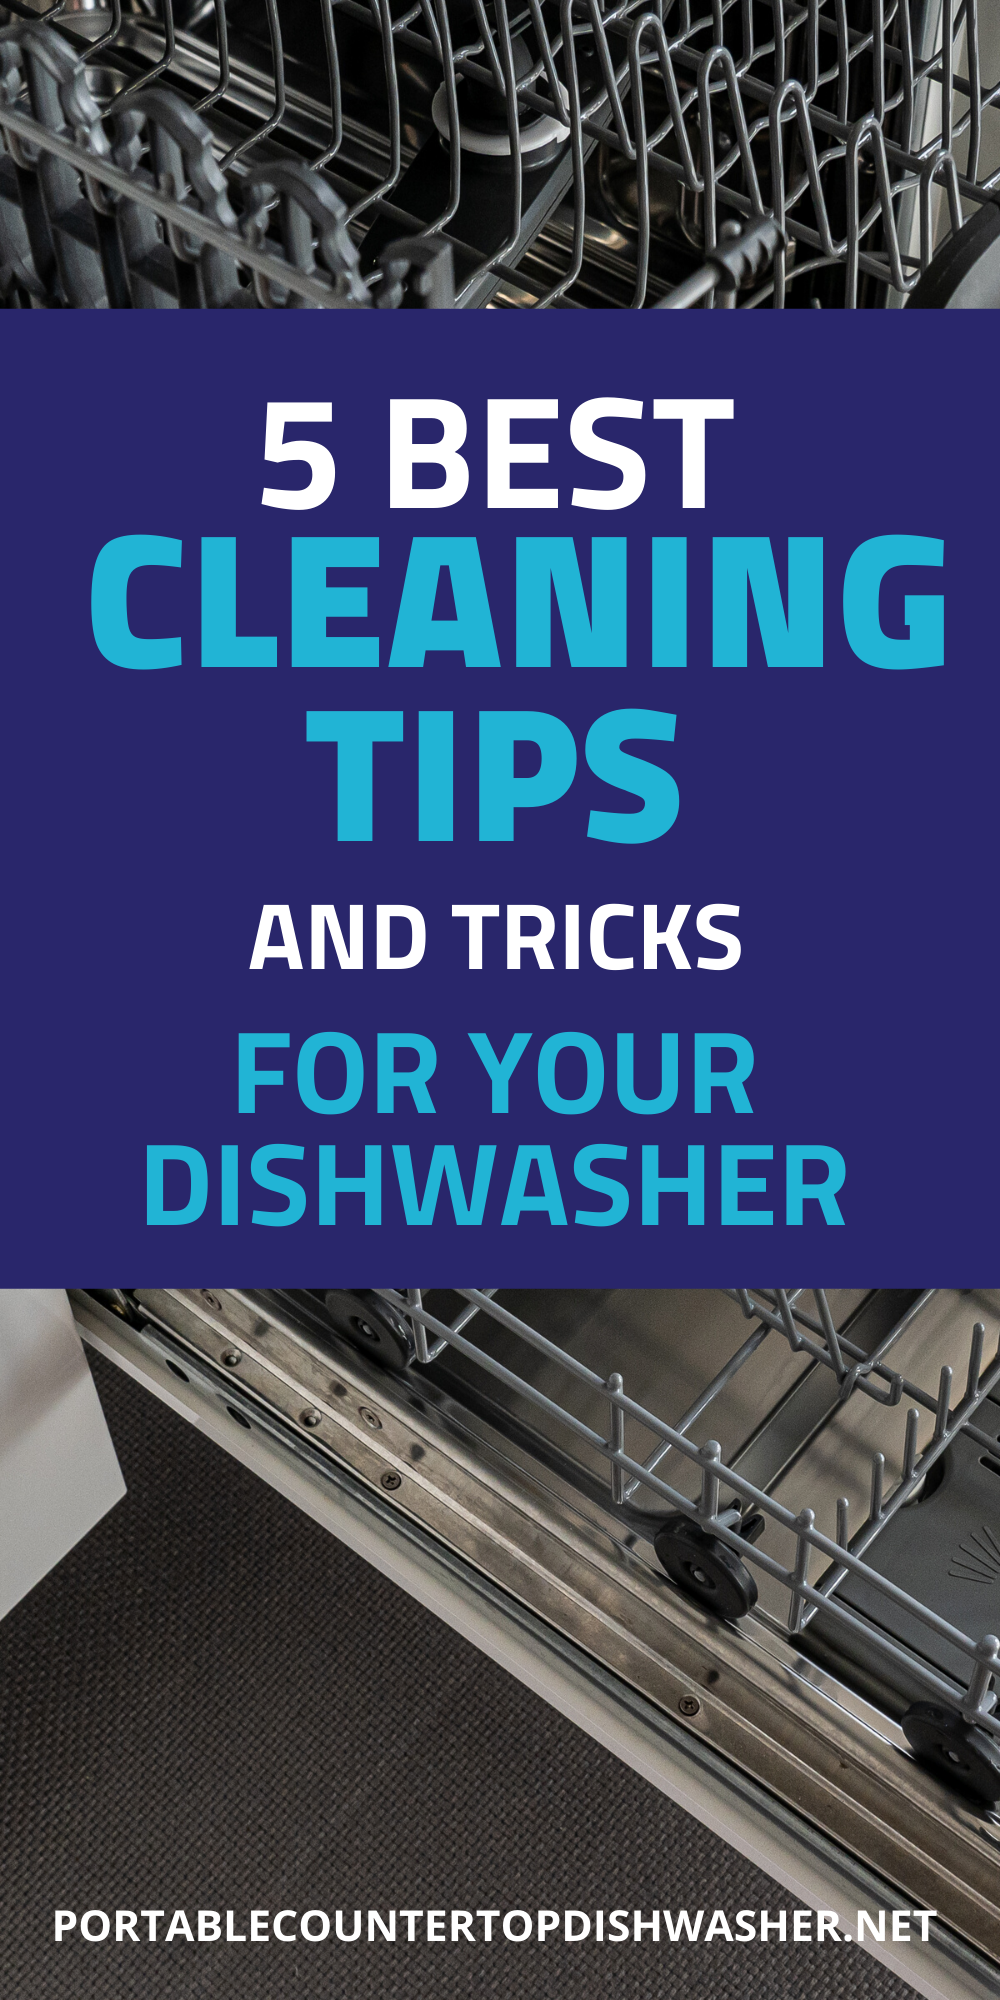 5 Best Cleaning Tips And Tricks Dishwasher Diy In 2020 Cleaning Hacks Portable Dishwasher Countertop Dishwasher